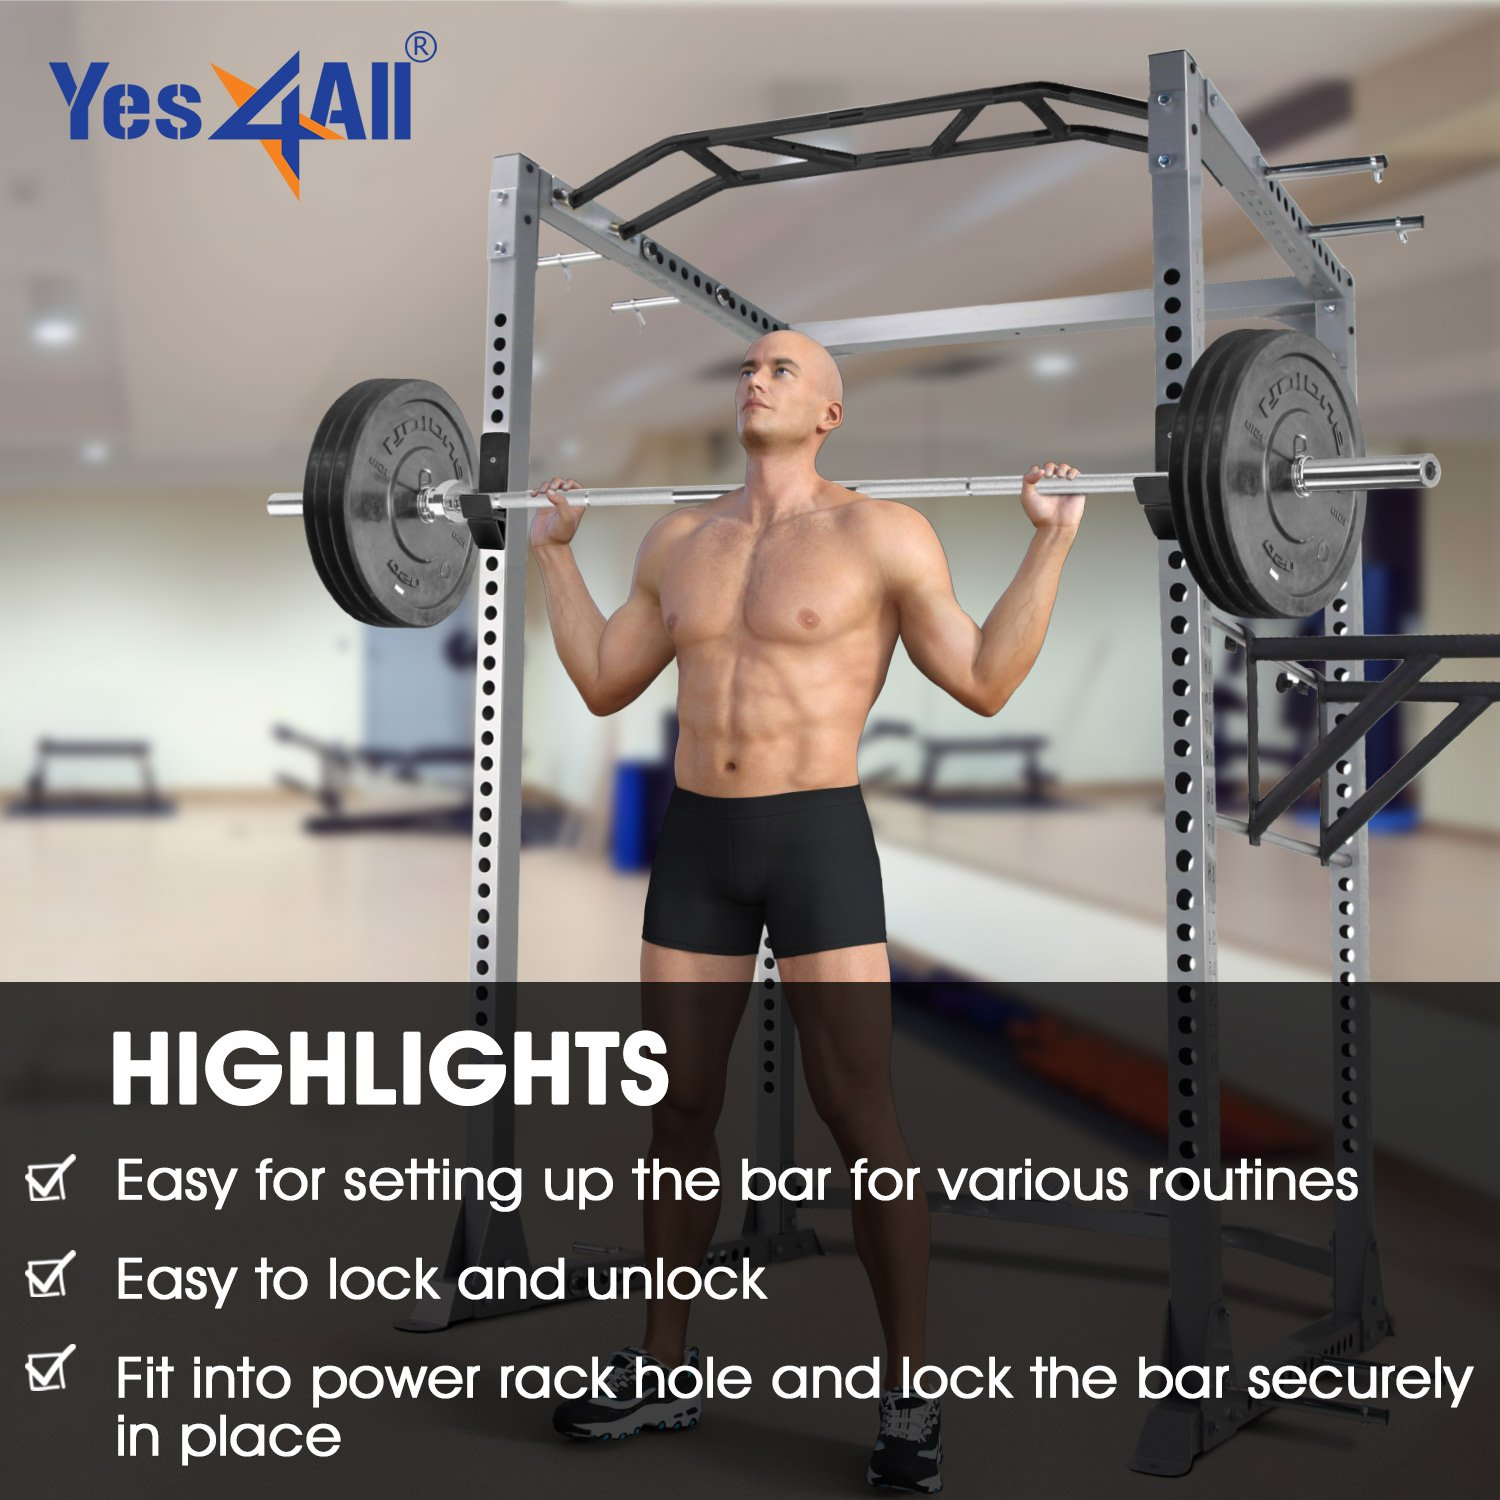 Yes4All Pair of J Hooks for Power Rack, Squat Rack - J Hook Weight Rack (2 inch Square Tube) by Yes4All (Image #7)